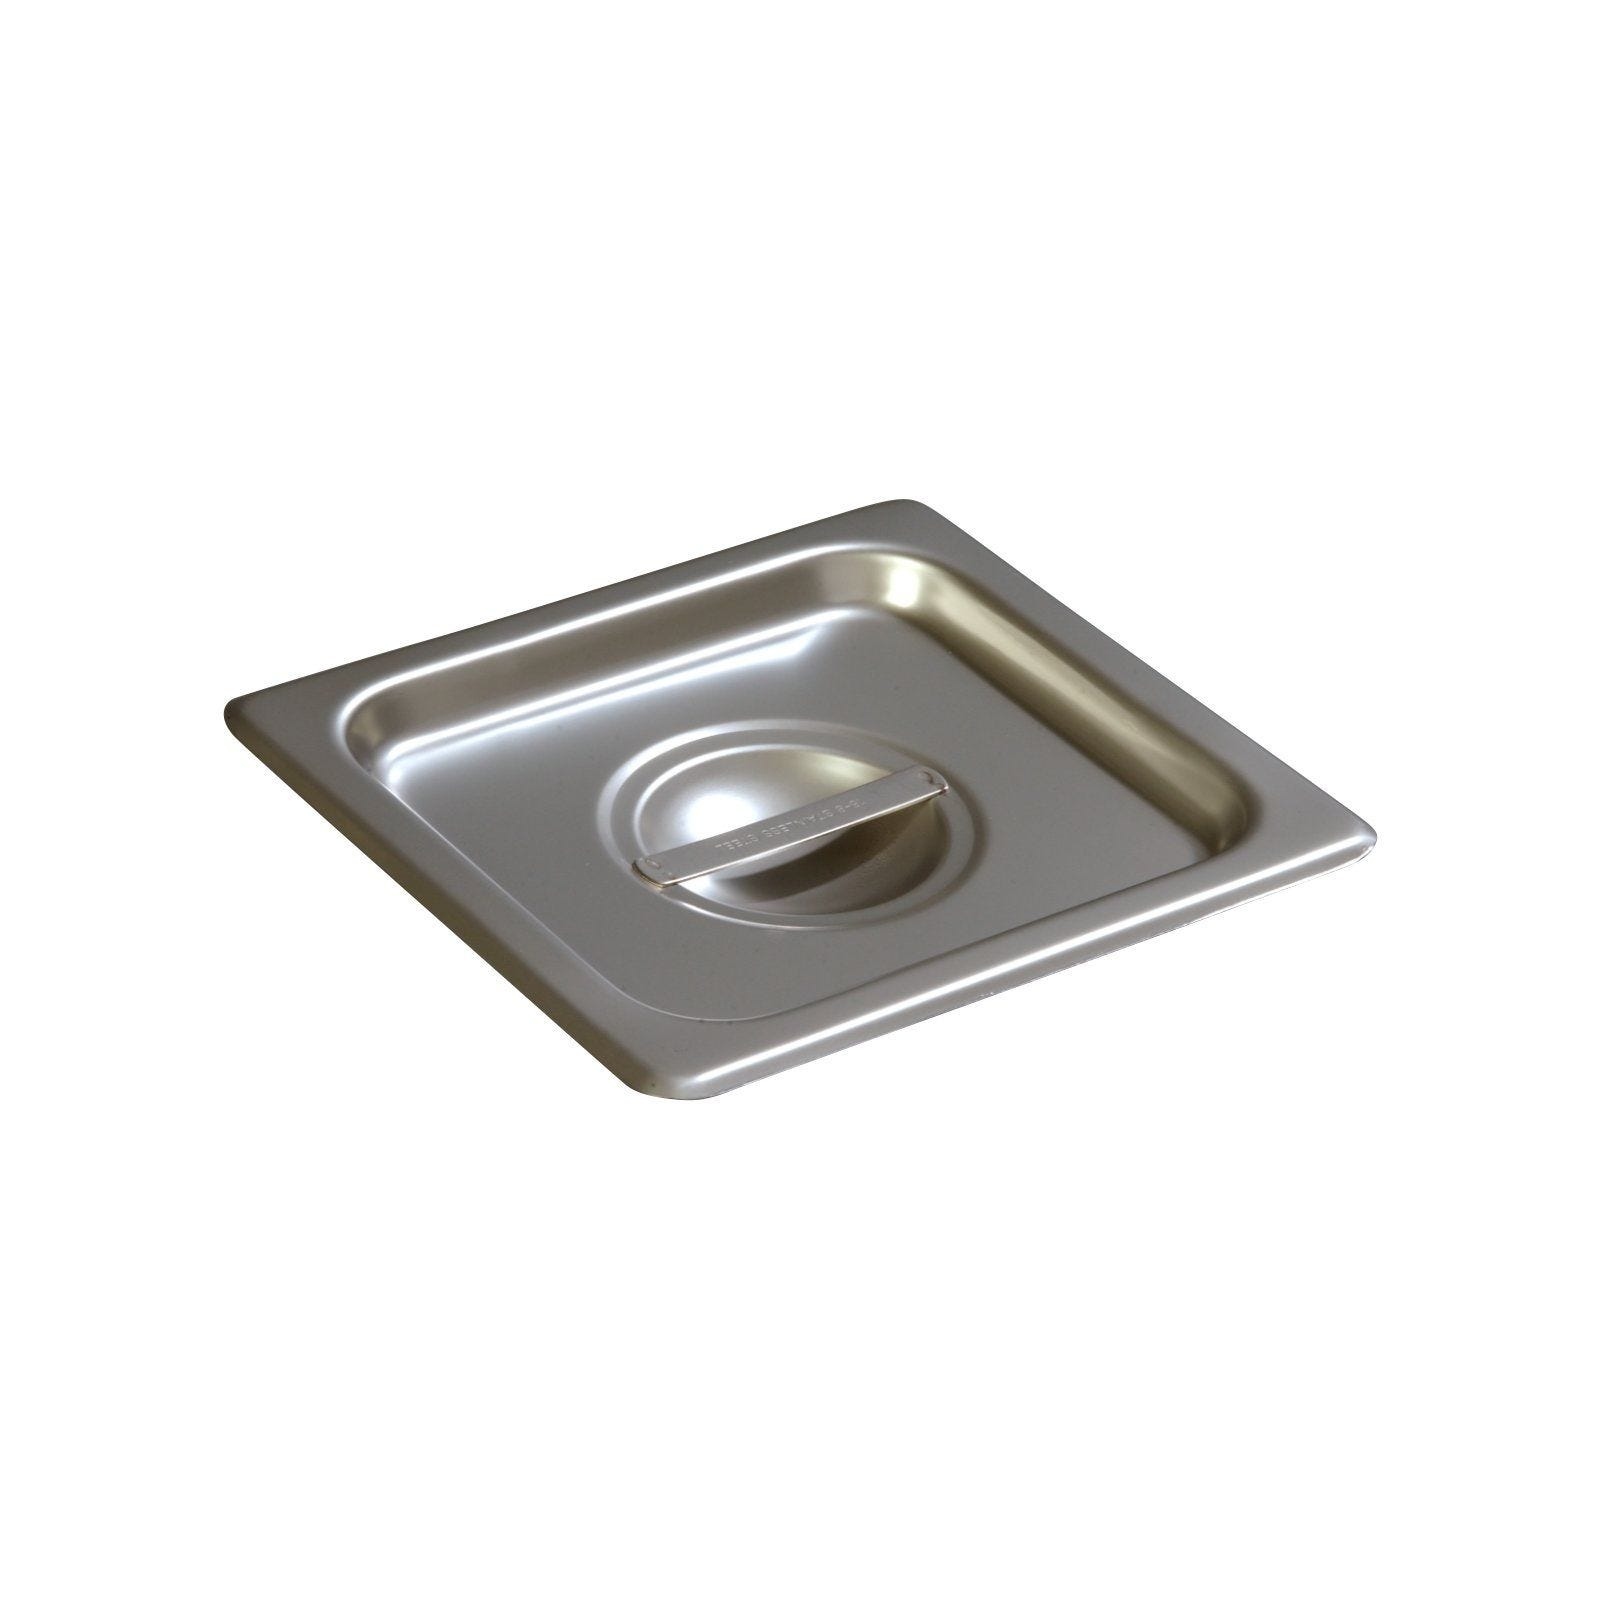 Solid Cover For Half-Long Steam Table Pan Winco SPJL-HCS NSF